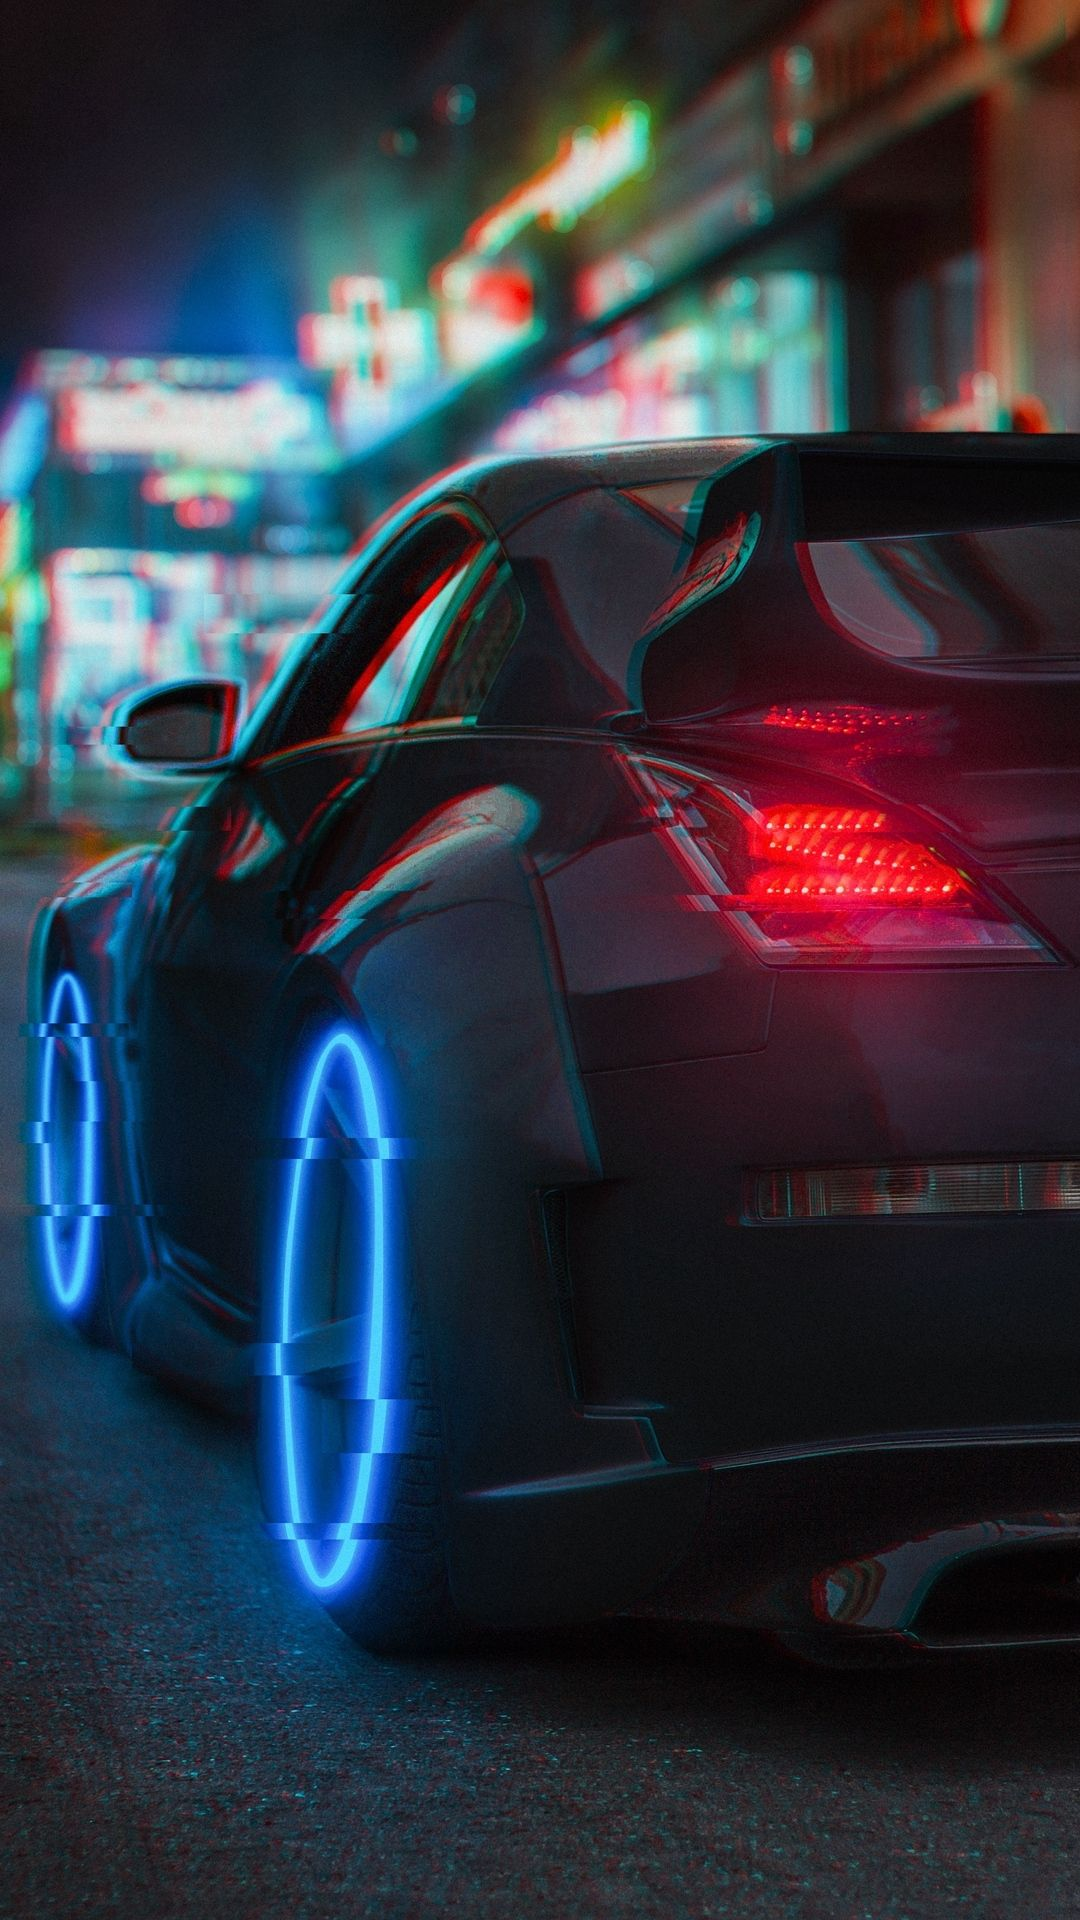 Apple Iphone Wallpaper Car Iphone Wallpaper Need For Speed Cars Futuristic Cars